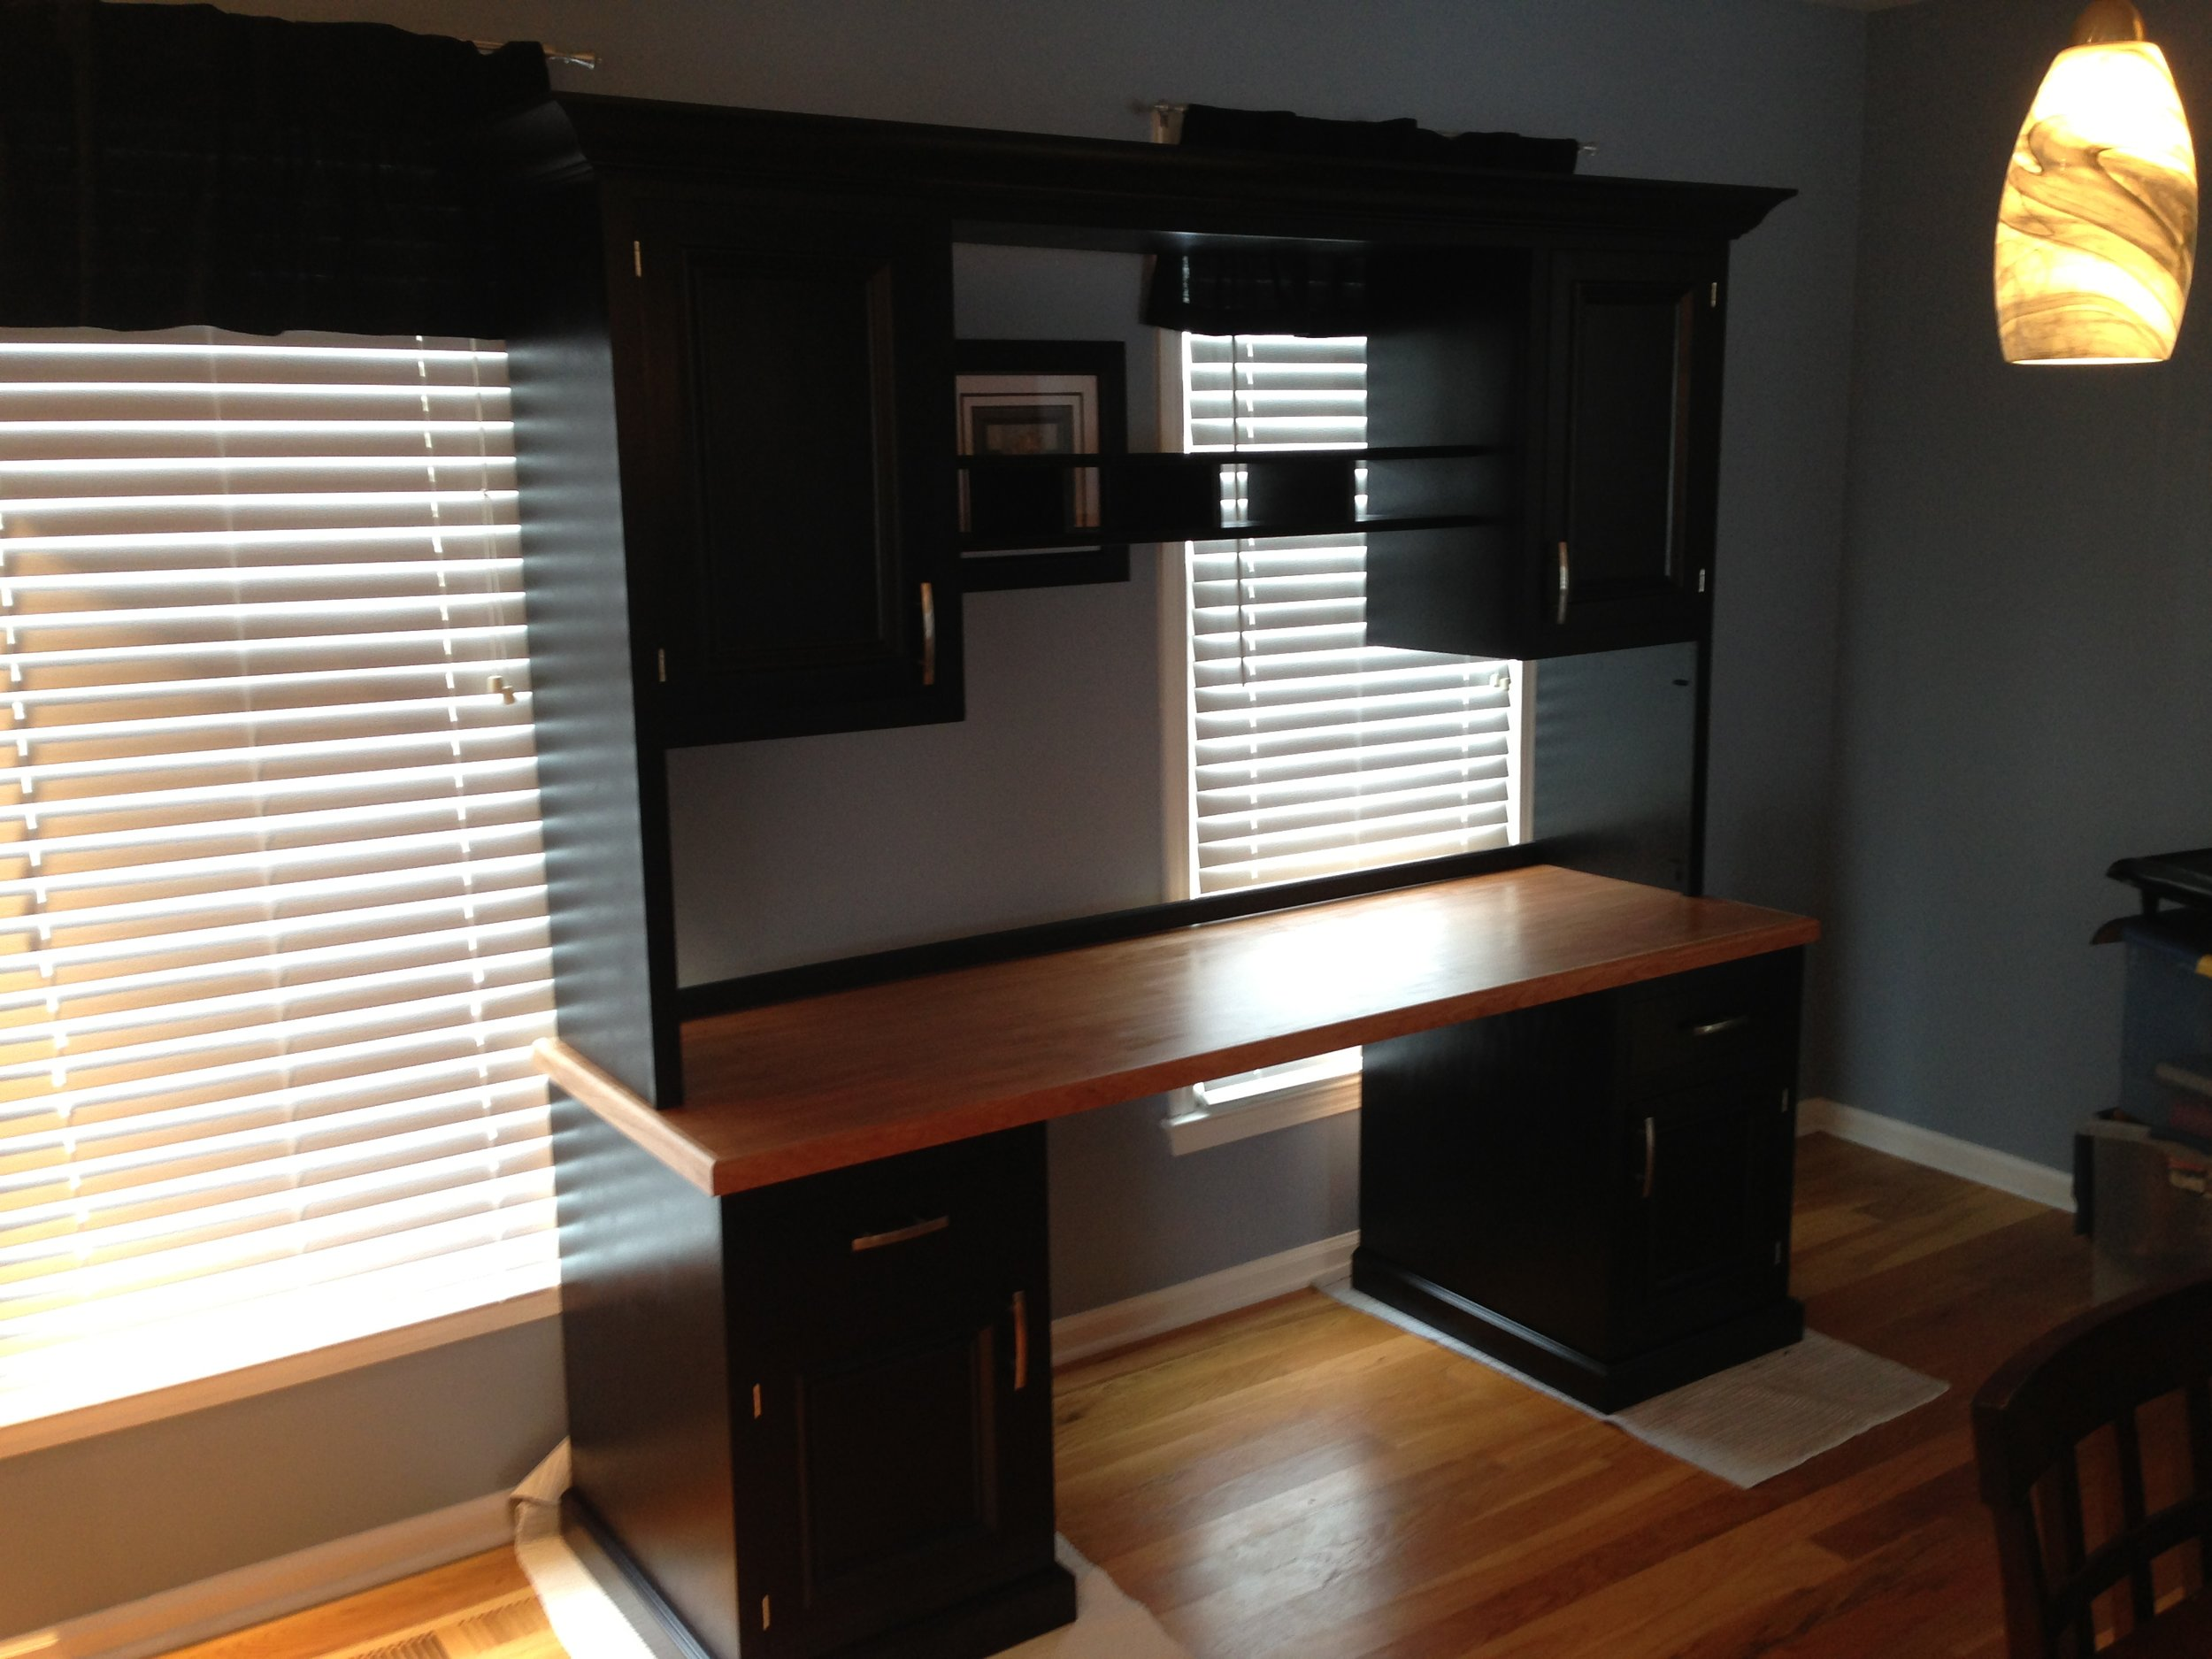 Building a Simple Desk with a Hutch!